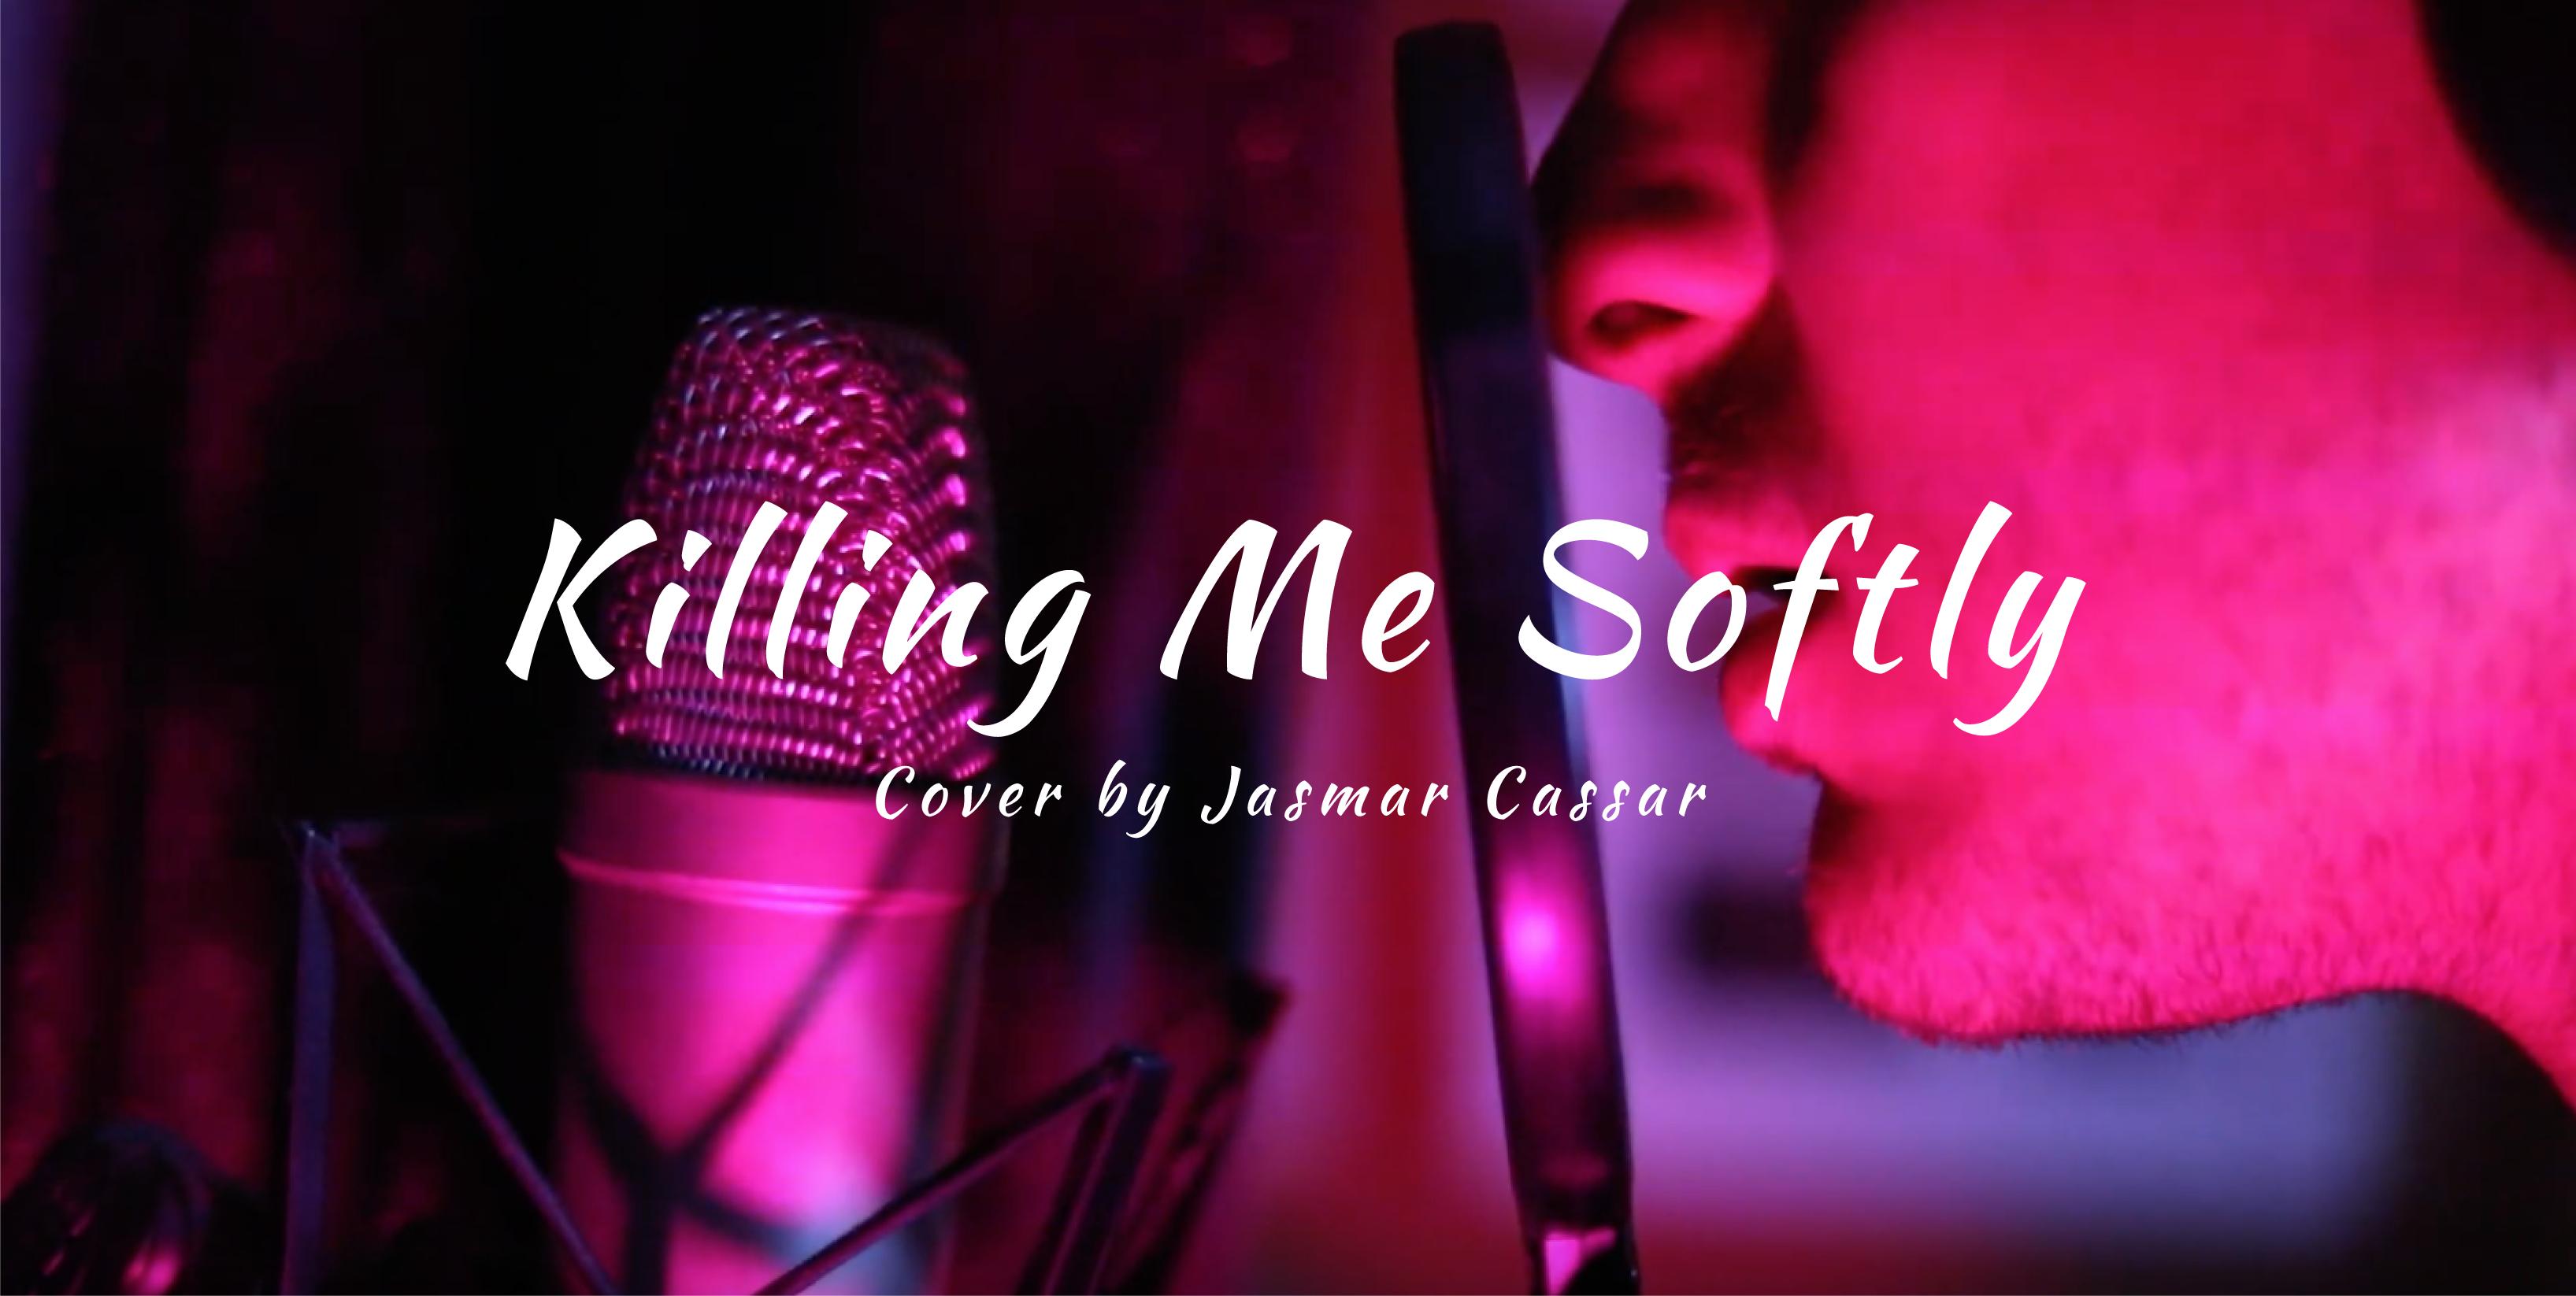 Killing Me Softly | Cover by Jasmar Cassar